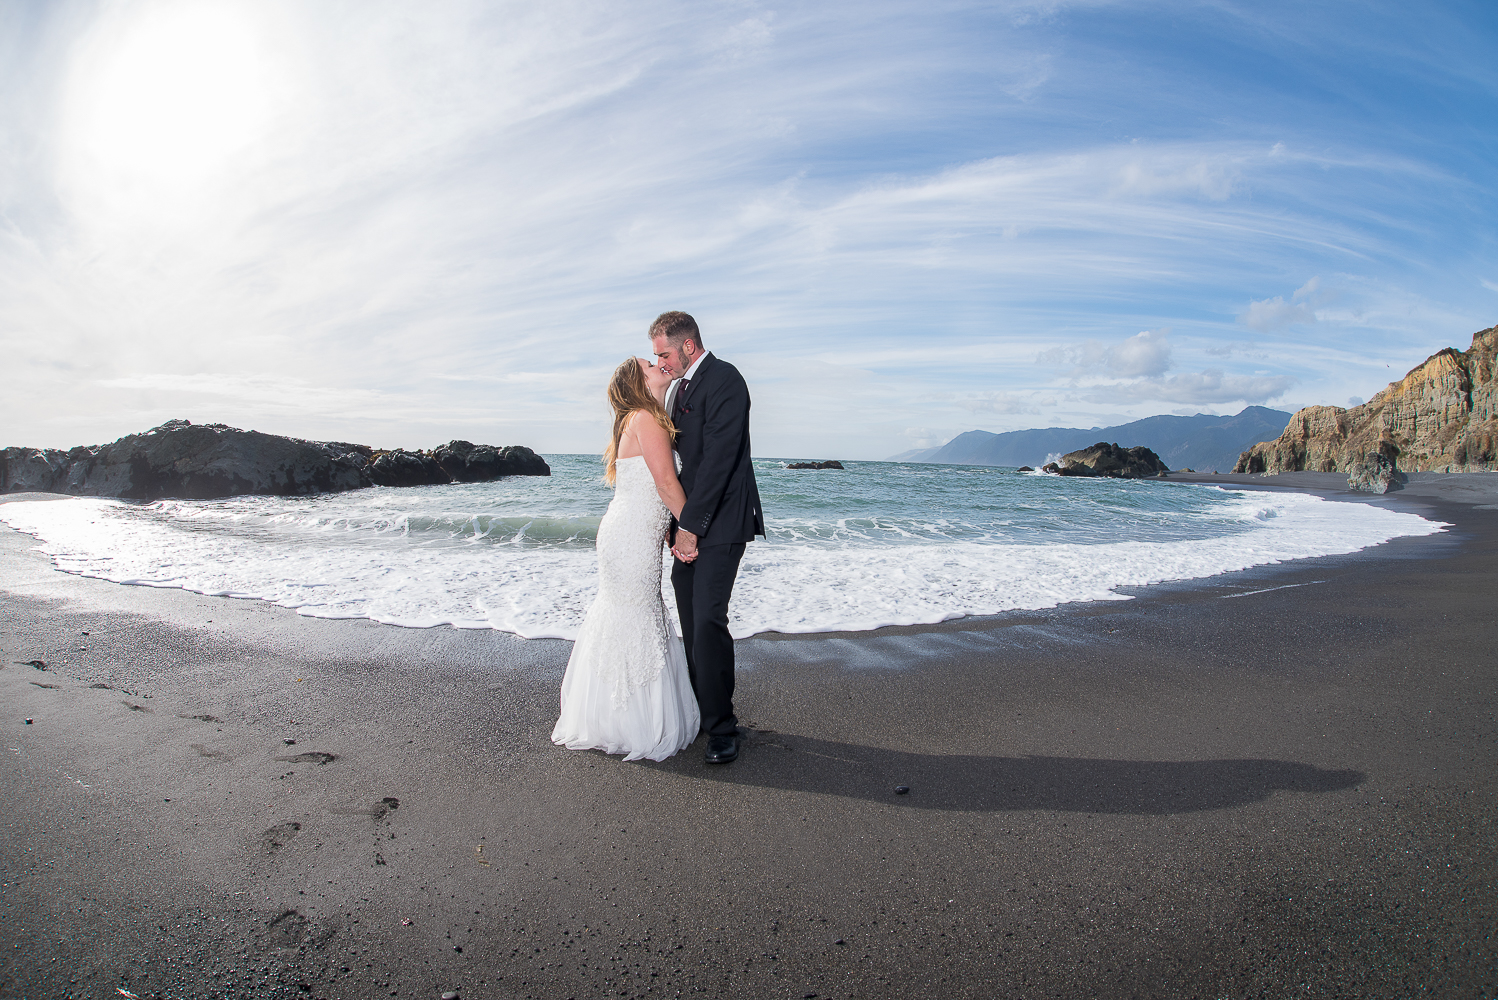 Shelter Cove-Intimate Destination beach Wedding-Parky's Pics Photography-Humboldt County_-32.jpg